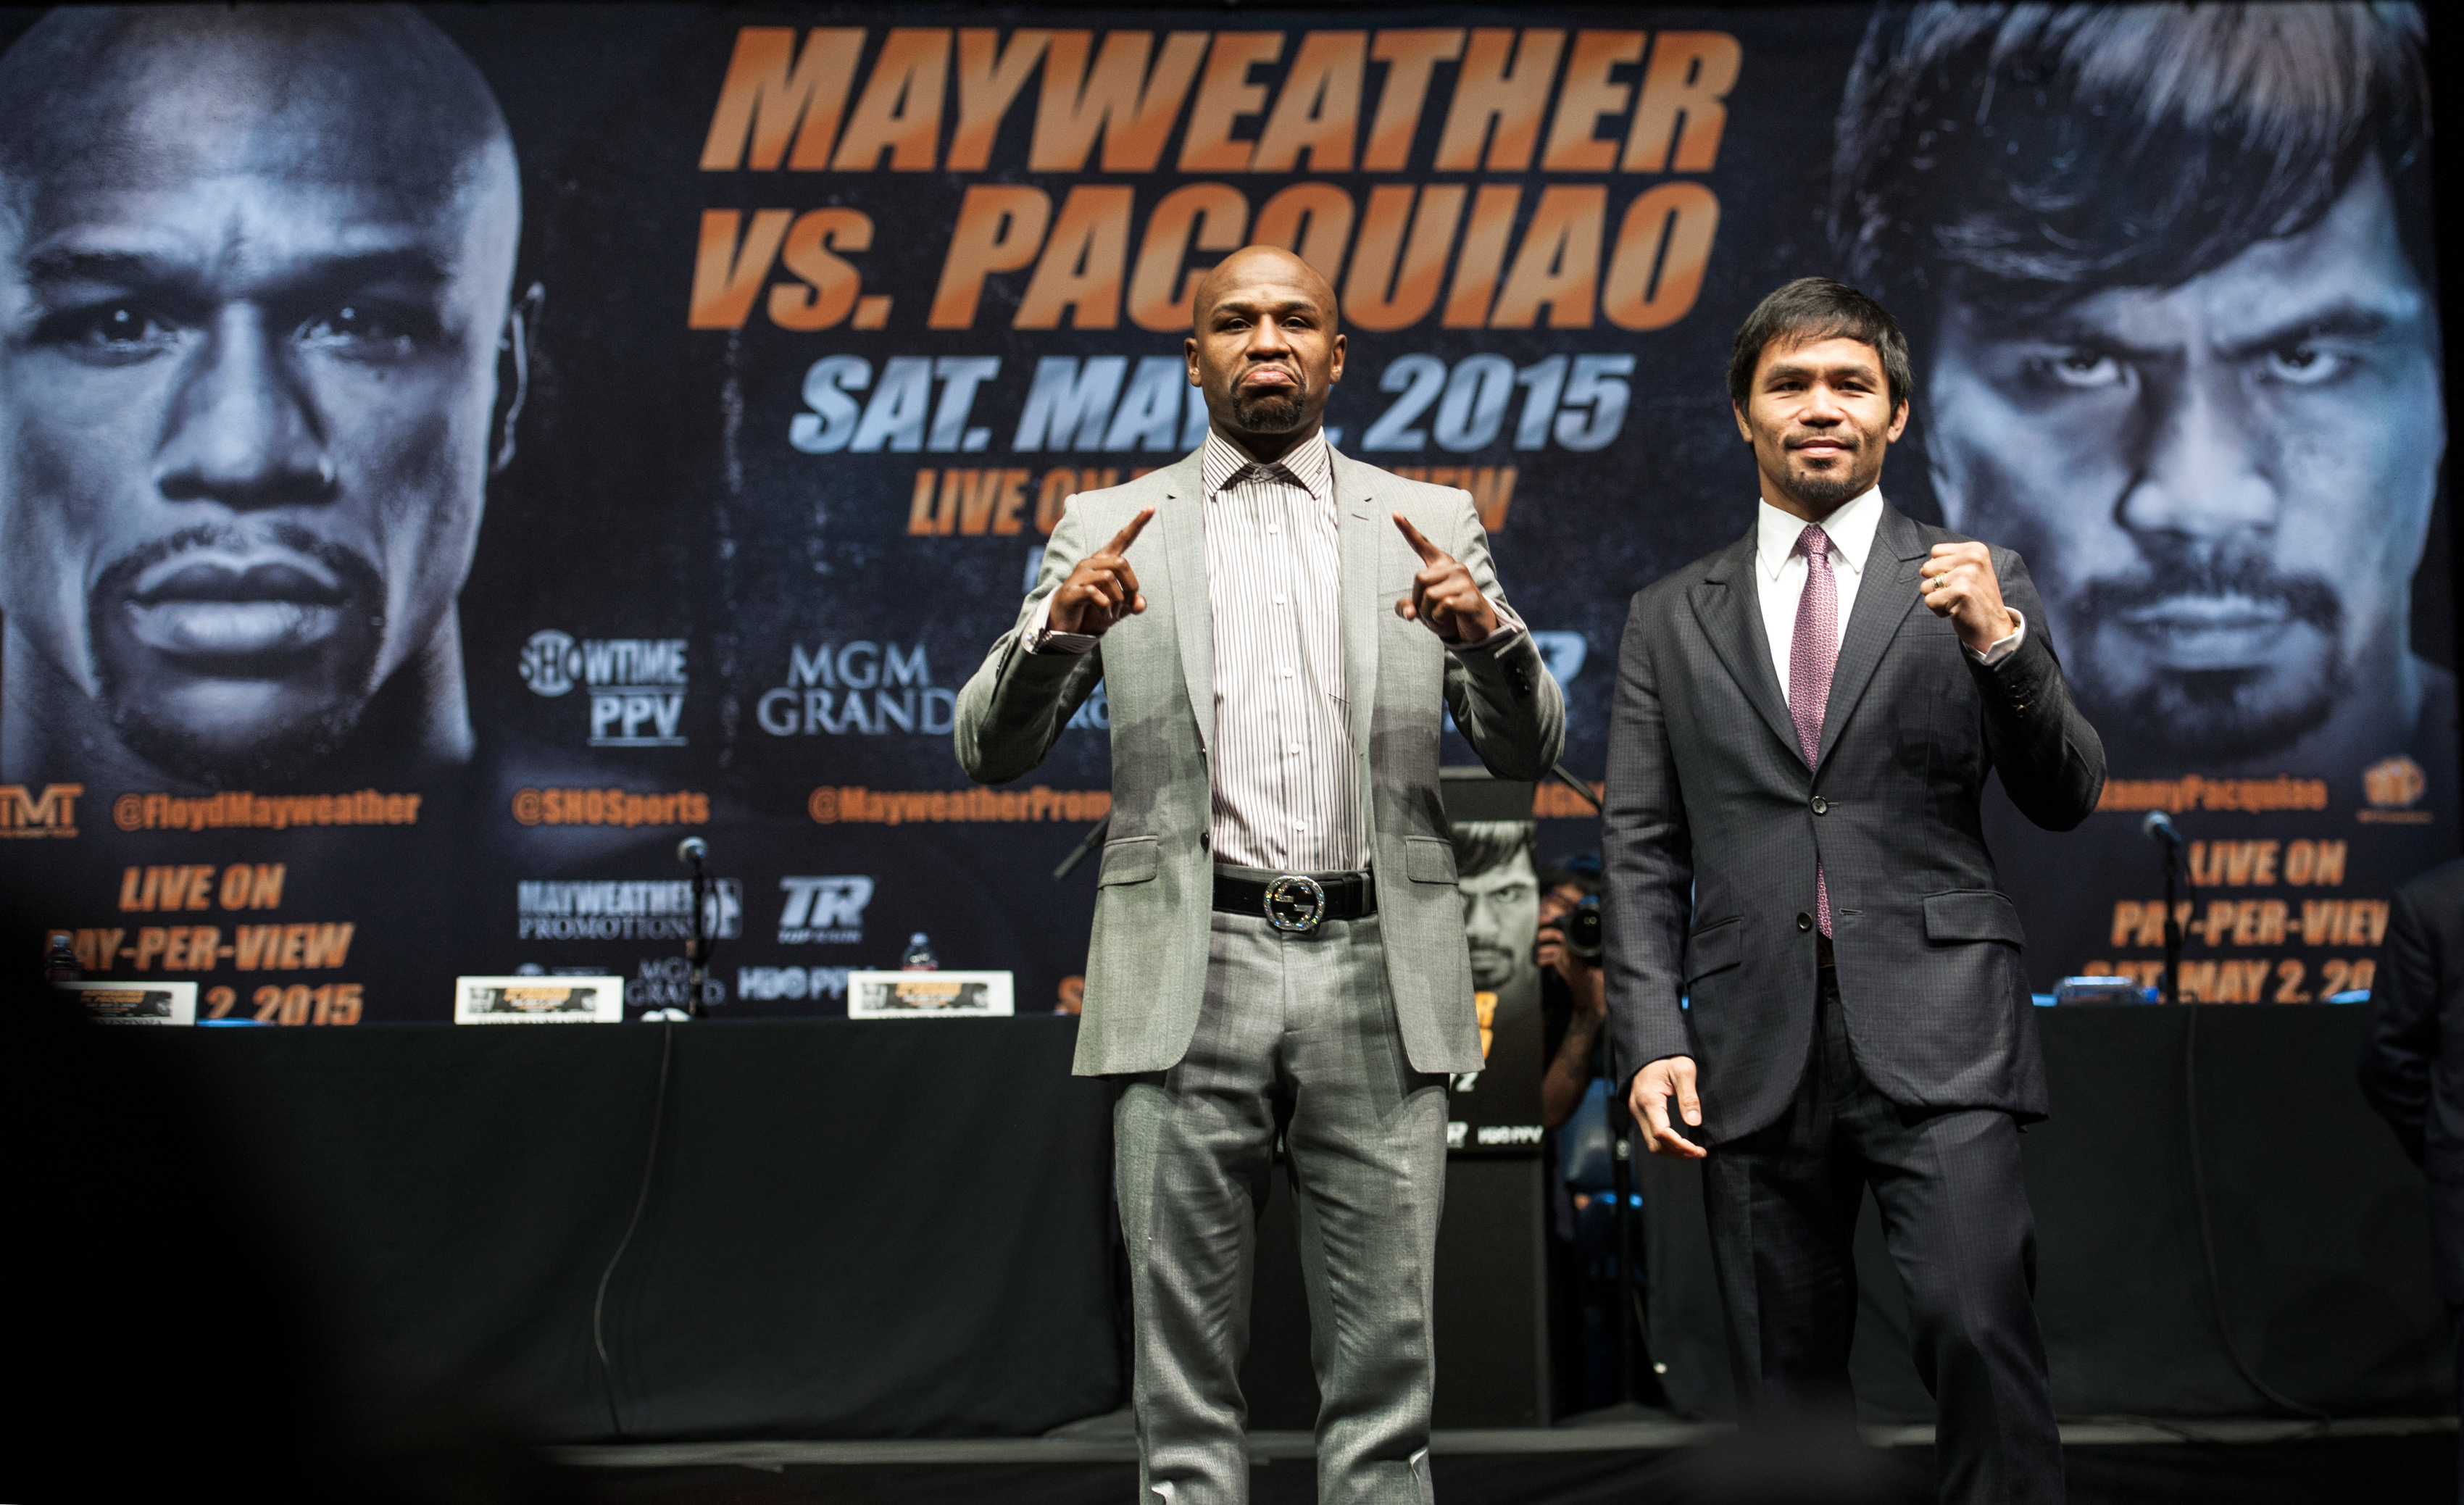 Floyd Mayweather Jr., and Manny Pacquiao strike their pose after a news conference. They are scheduled to box in the  Fight of the Century  in Las Vegas on May 2, 2015.